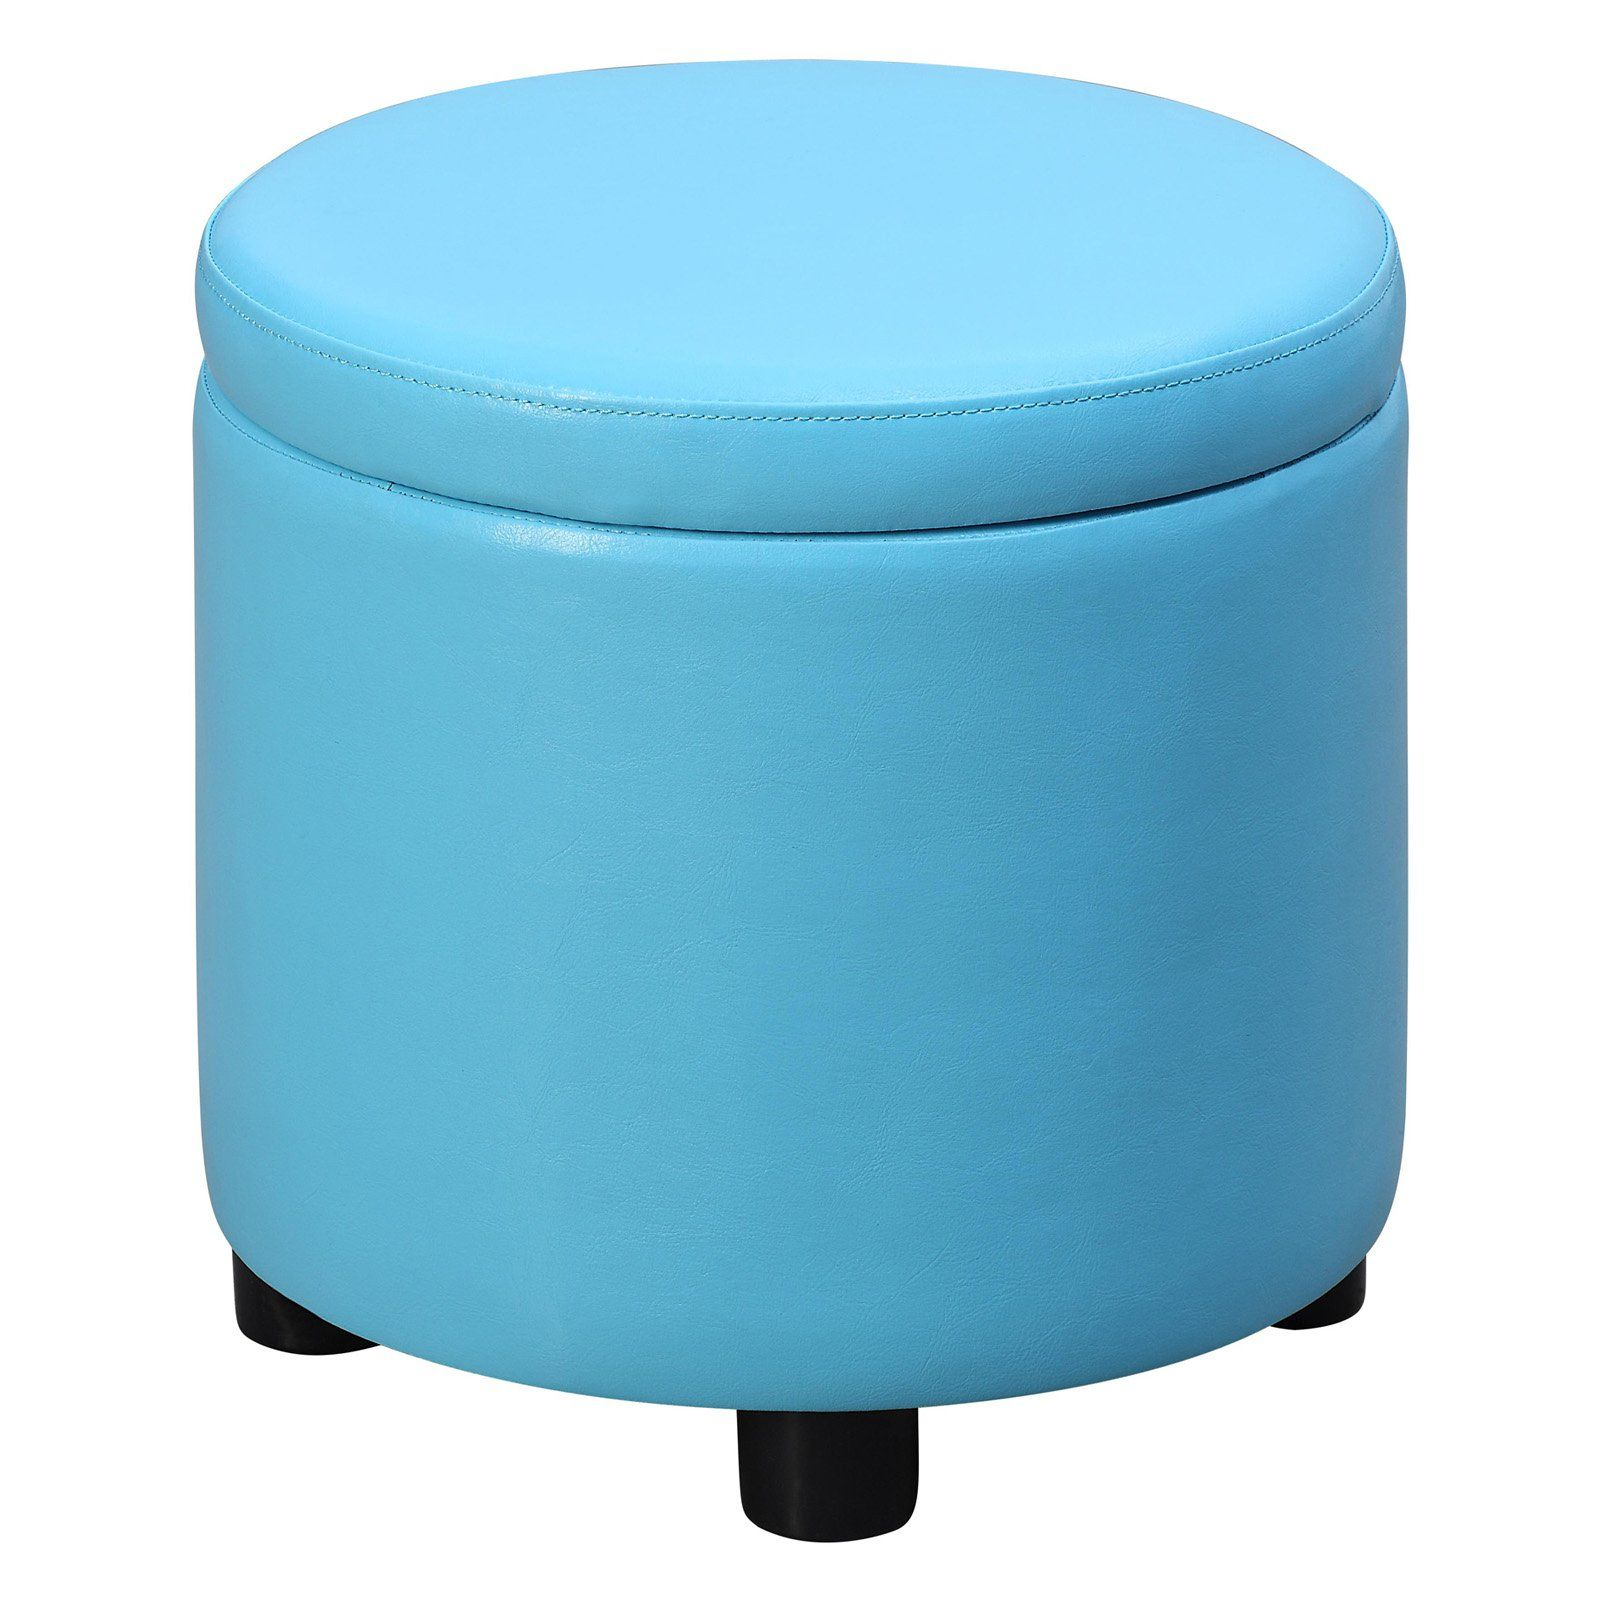 Outstanding Convenience Concepts Designs4Comfort Storage Ottoman Sea Short Links Chair Design For Home Short Linksinfo